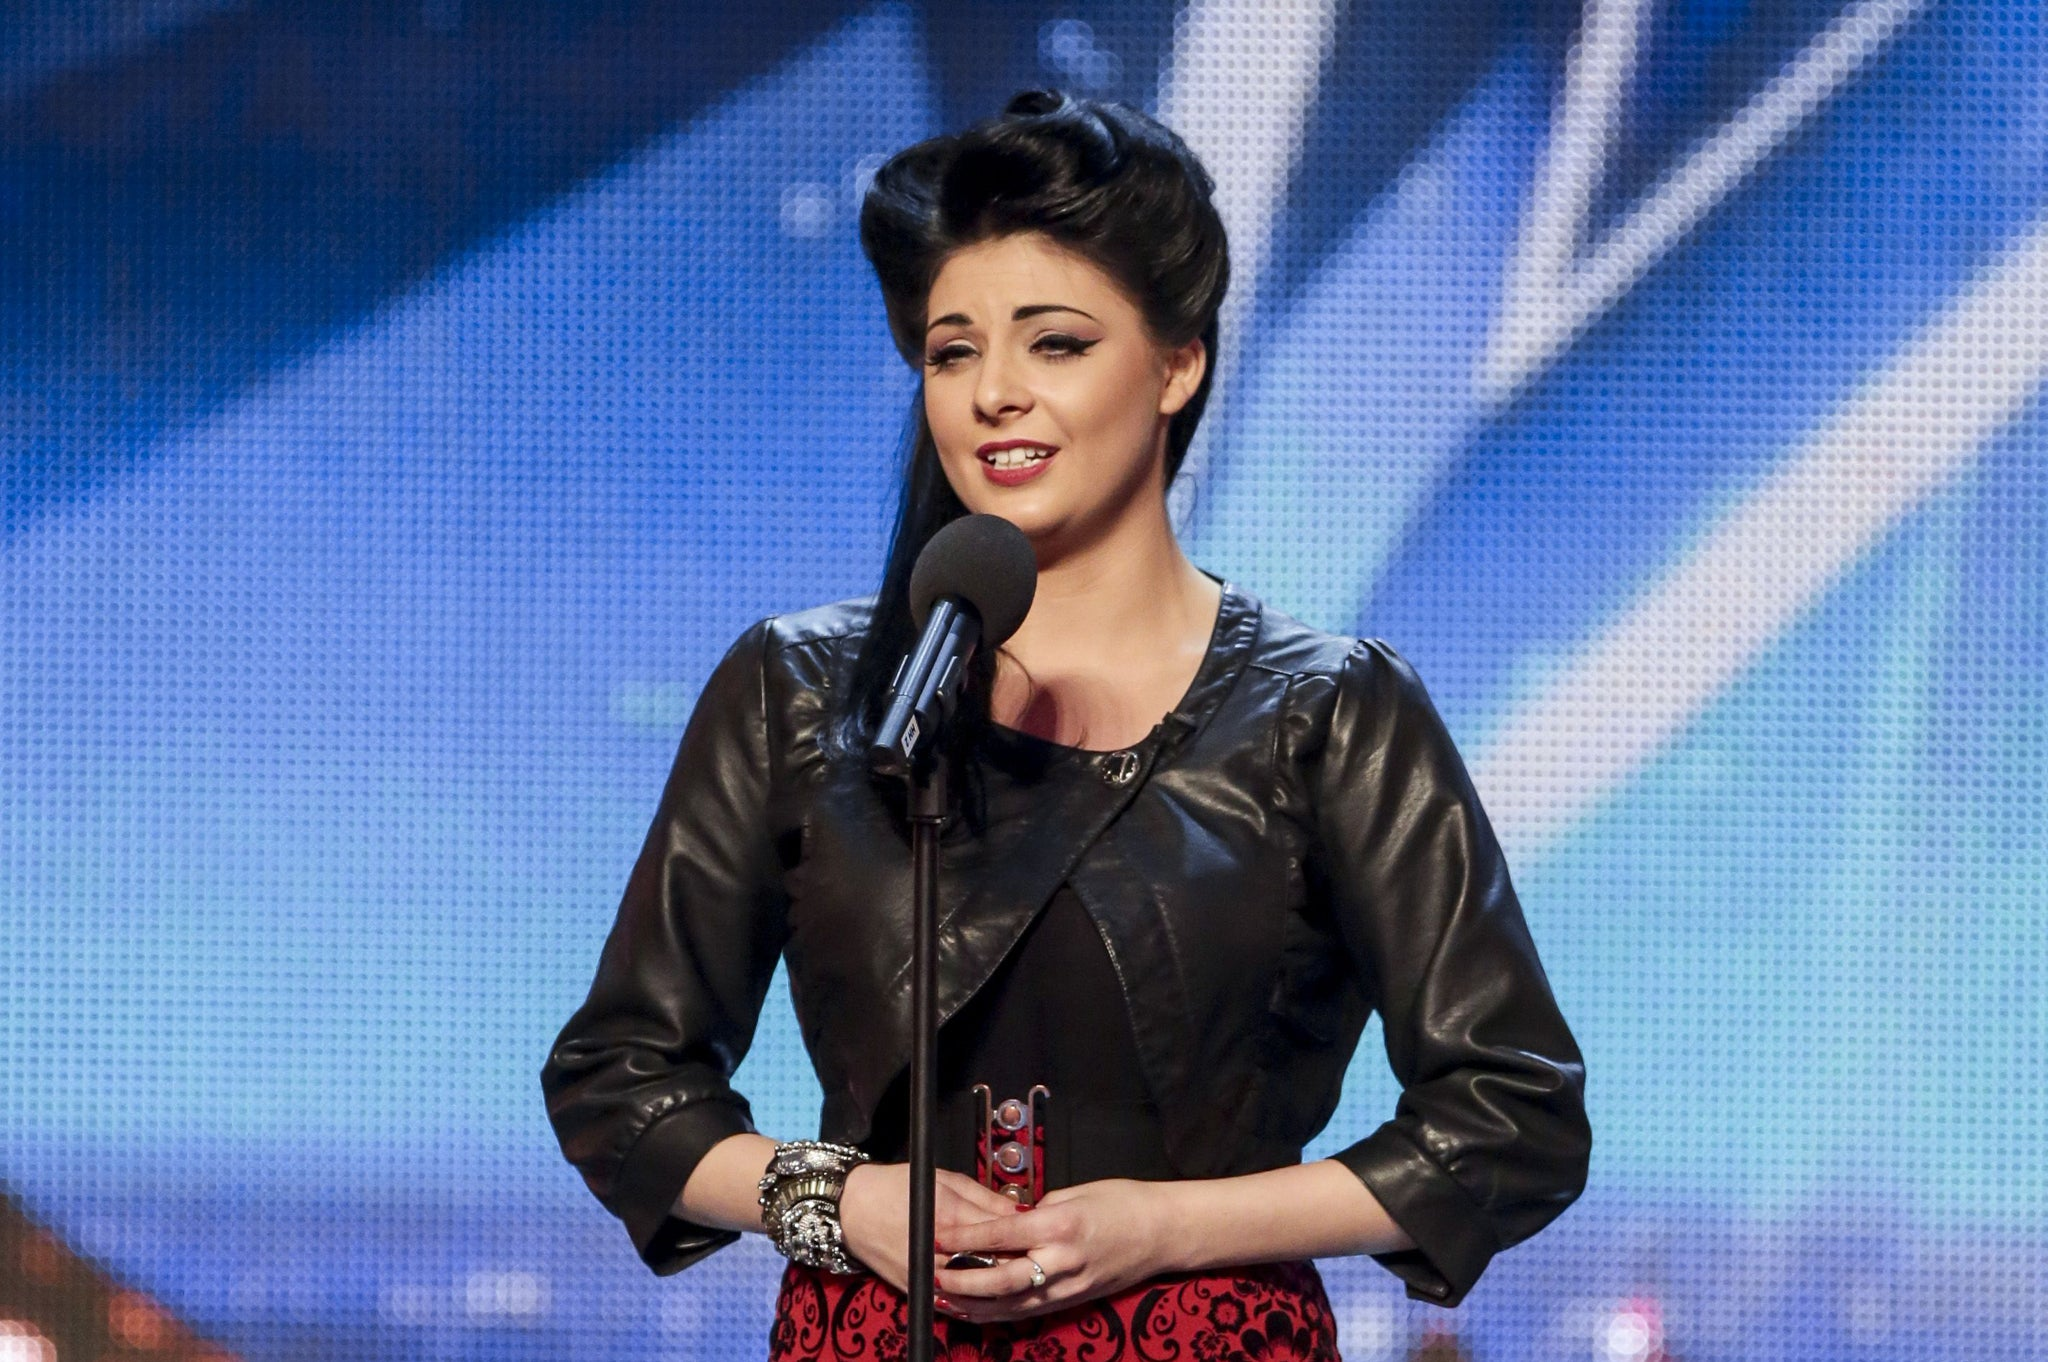 Britain S Got Talent 2014 Opera Singer Lucy Kay Voted Through To Final The Independent